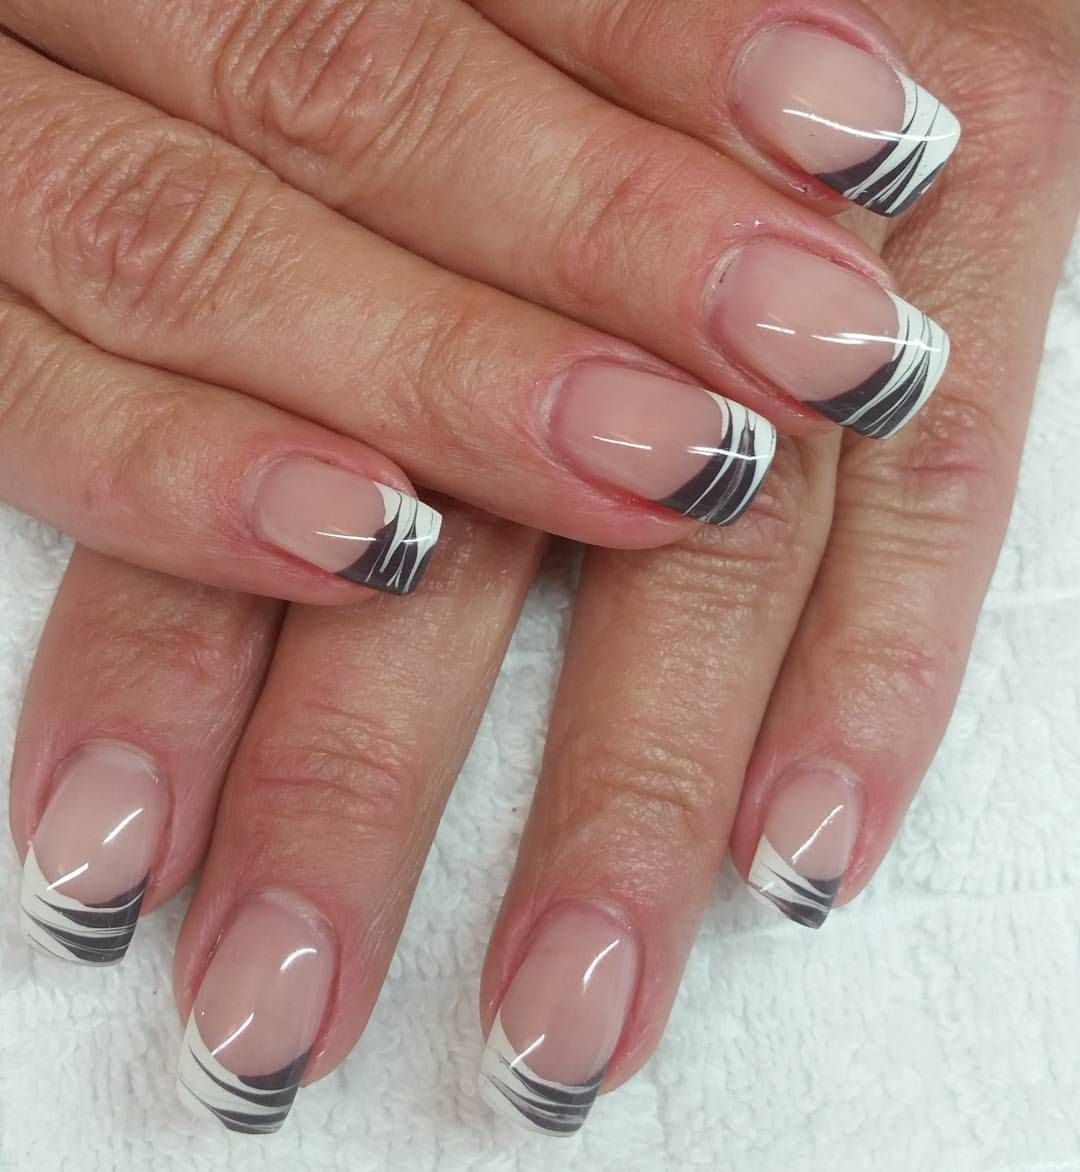 Pin by Teri Swallie on Sexy Looks   Pinterest   Manicure, Manicure ...